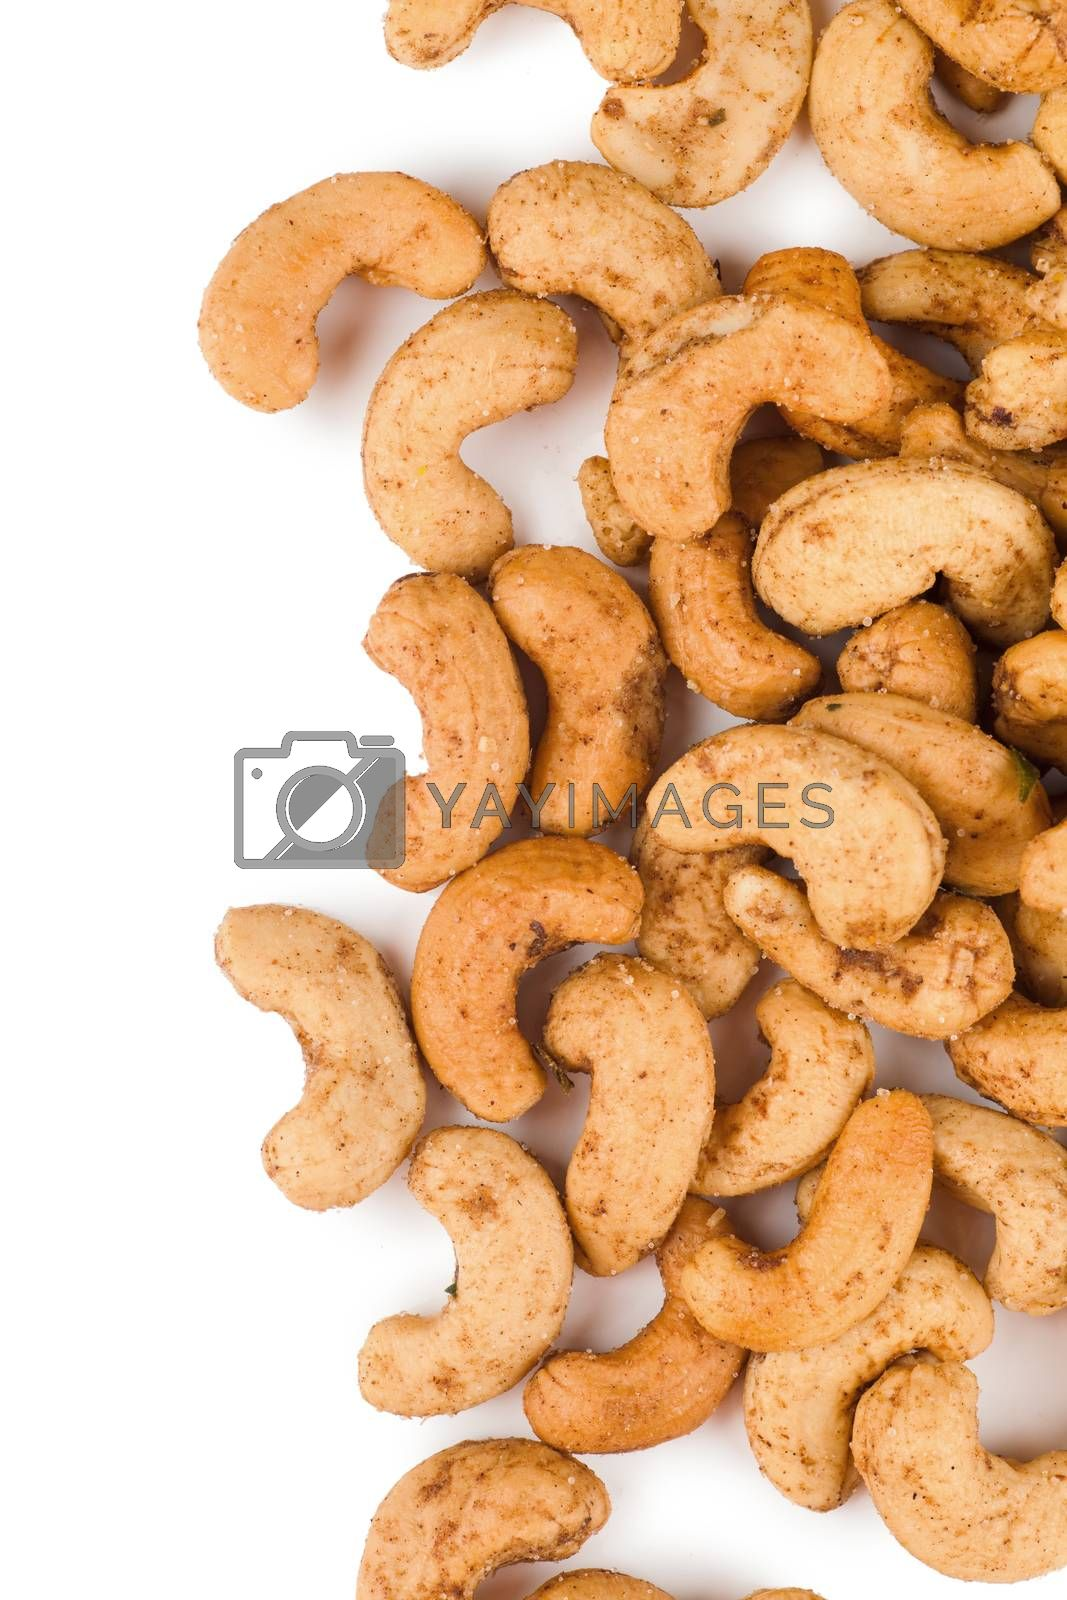 Closeup view of heap of cashew nuts over white background